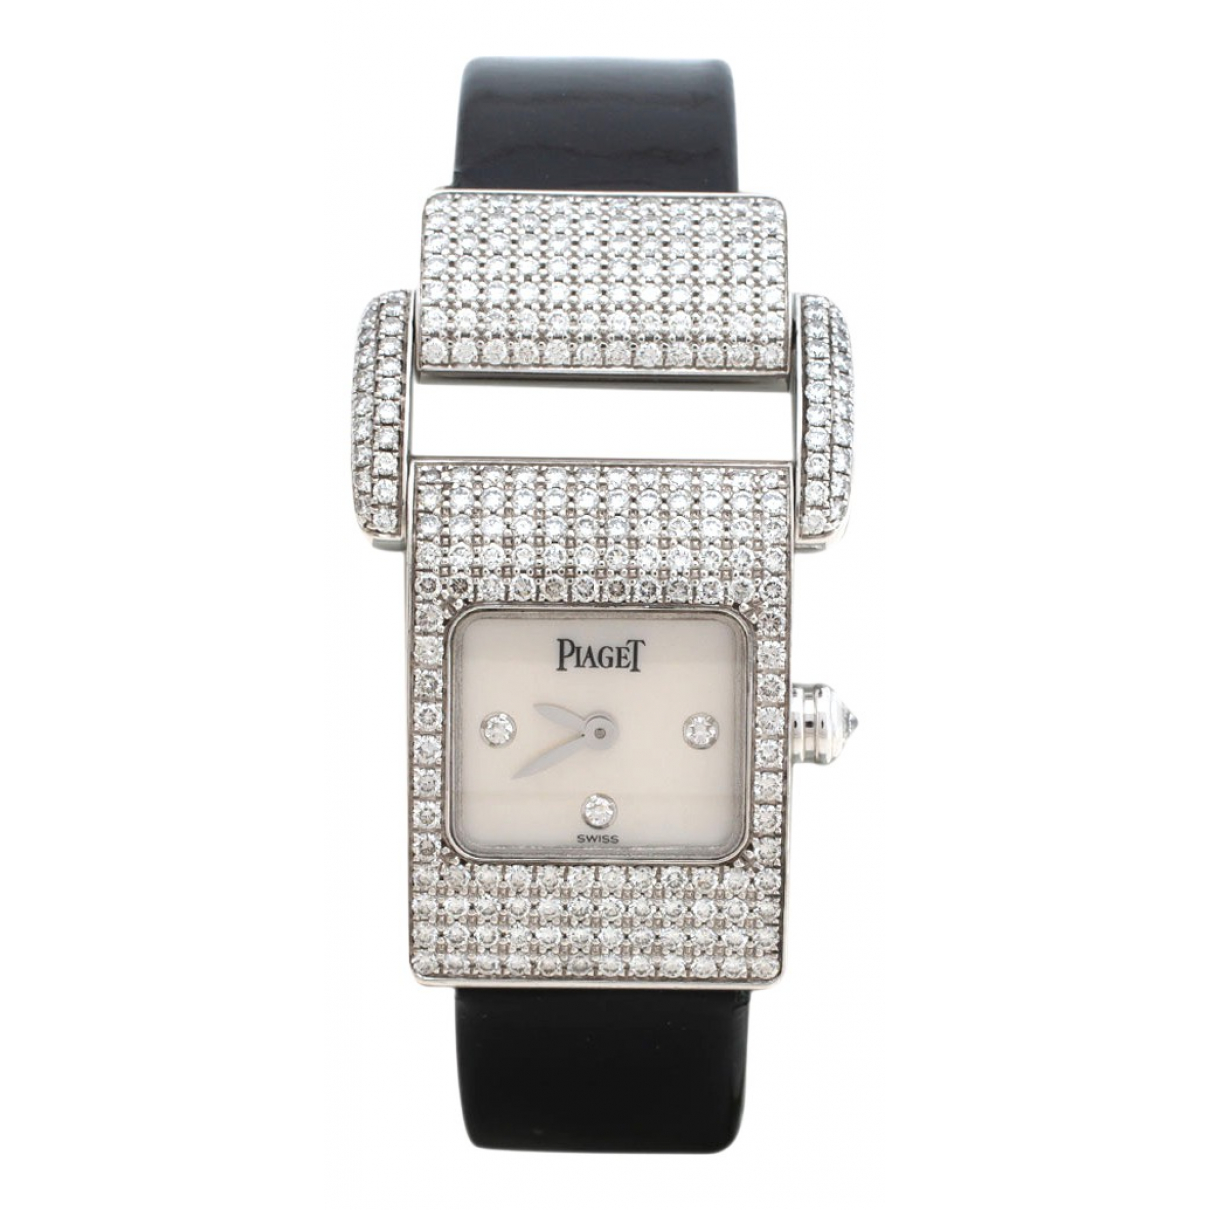 Piaget Protocole White gold watch for Women N